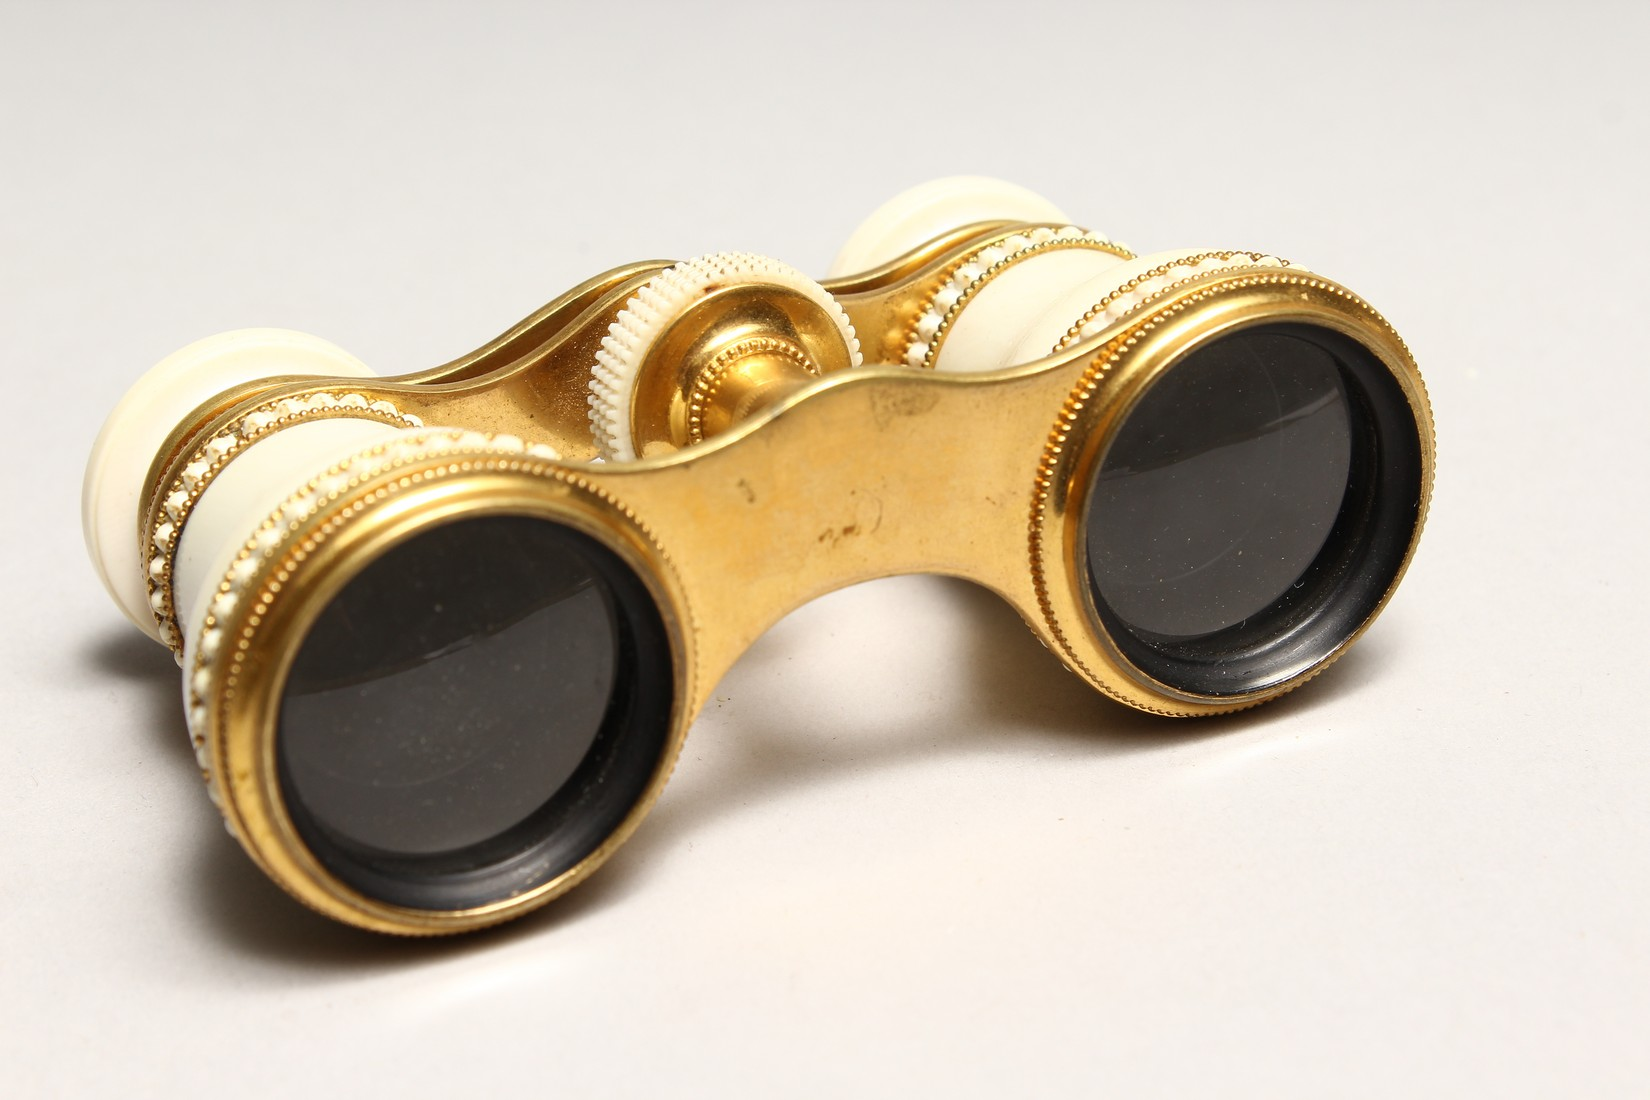 A PAIR OF IVORY AND GILT OPERA GLASSES 4.6ins long. - Image 5 of 6